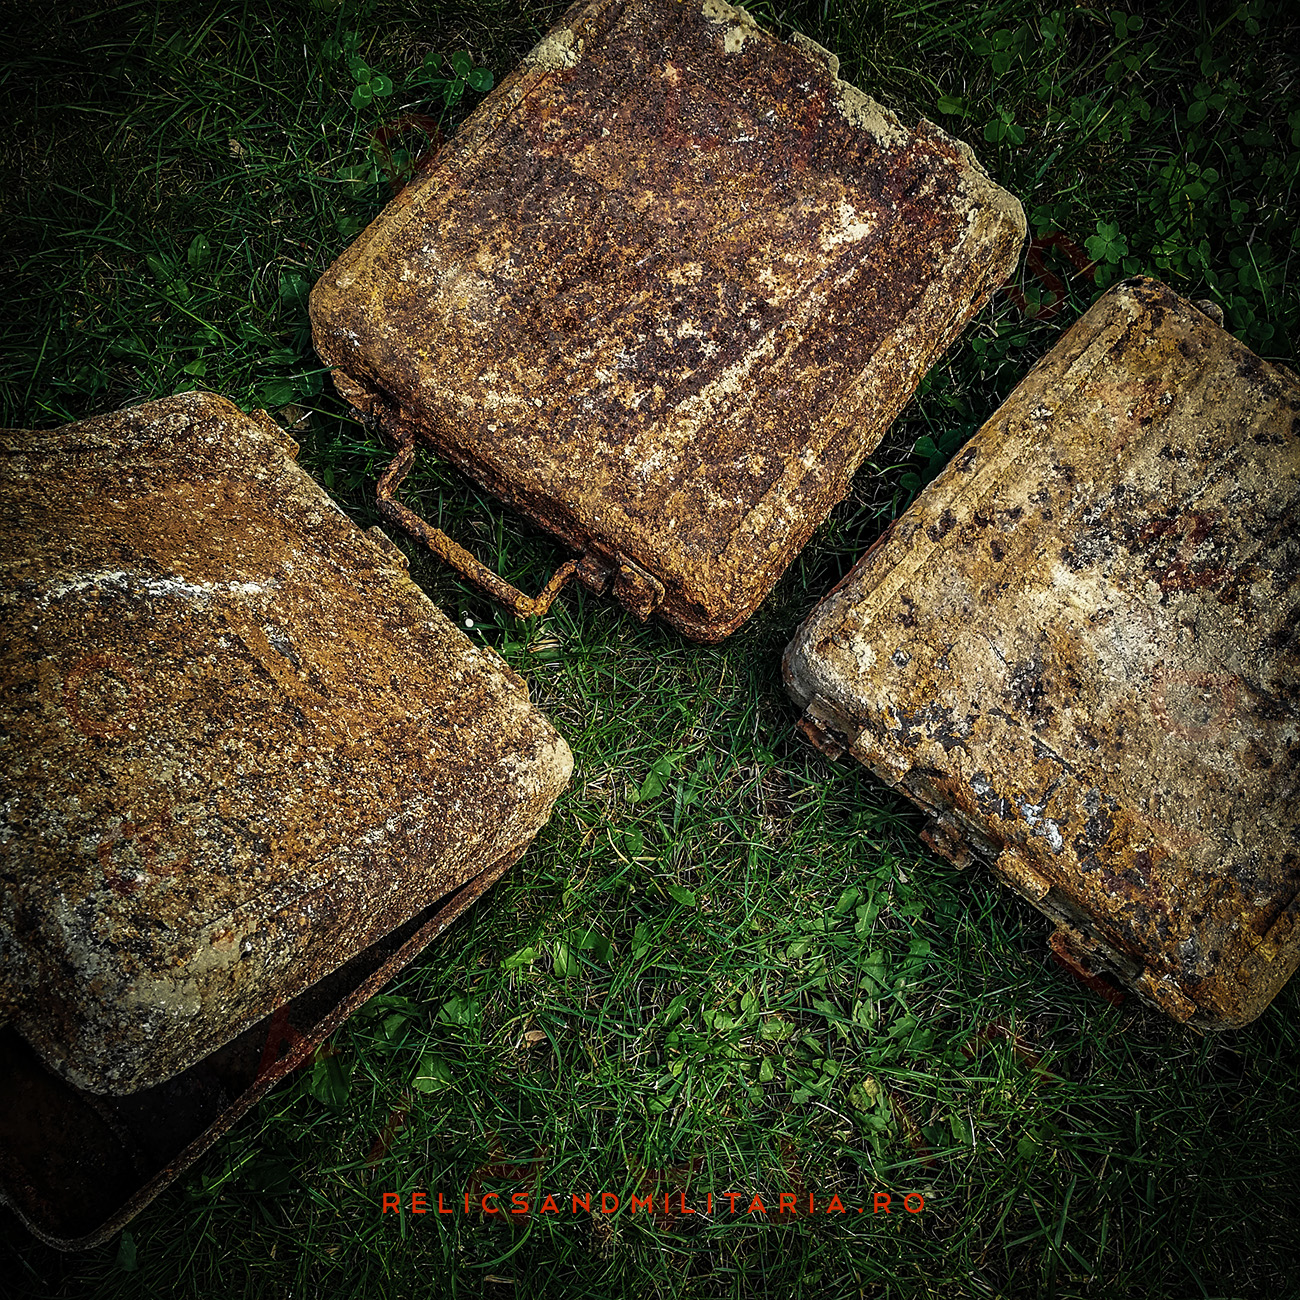 Relics find with metal detecting in Romania